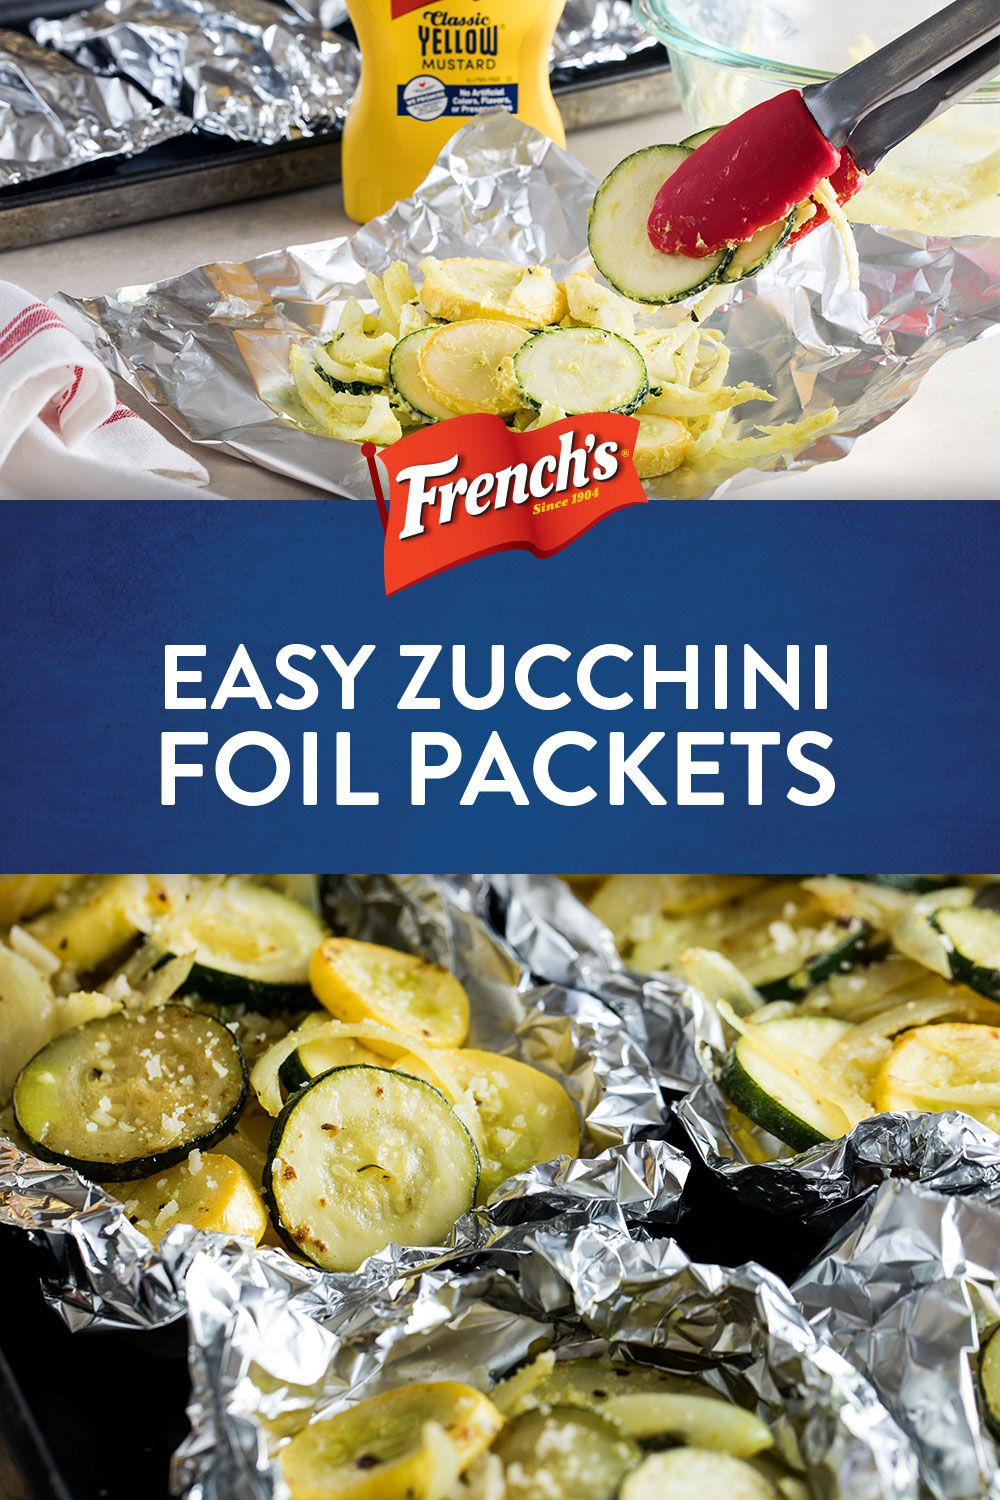 Easy Zucchini Foil Packets images